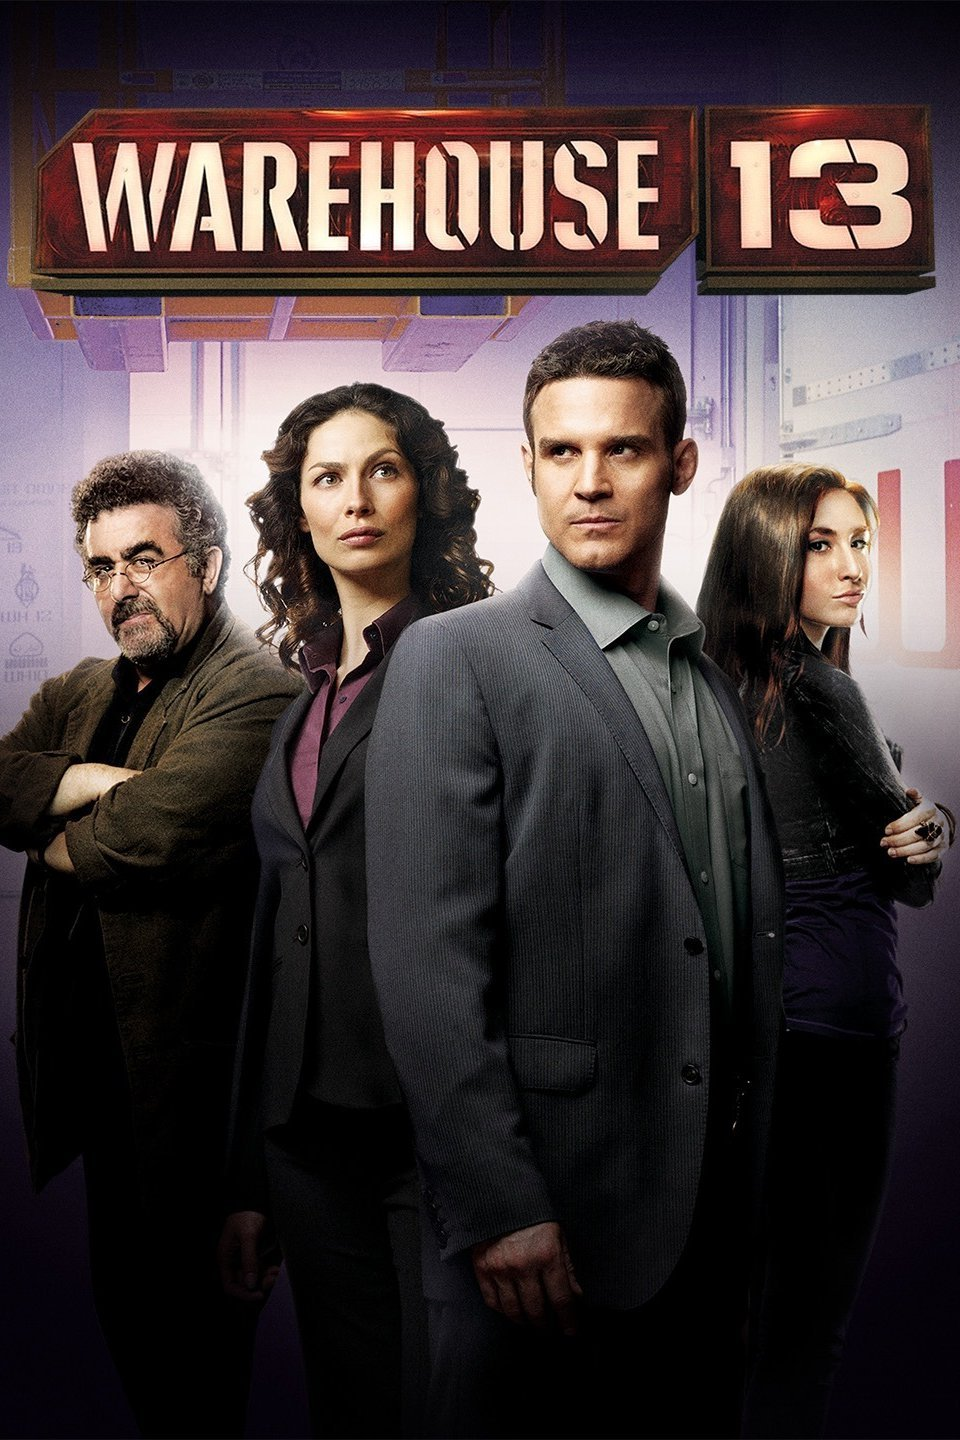 Warehouse 13 Season 1 Download Complete 480p WEB-DL